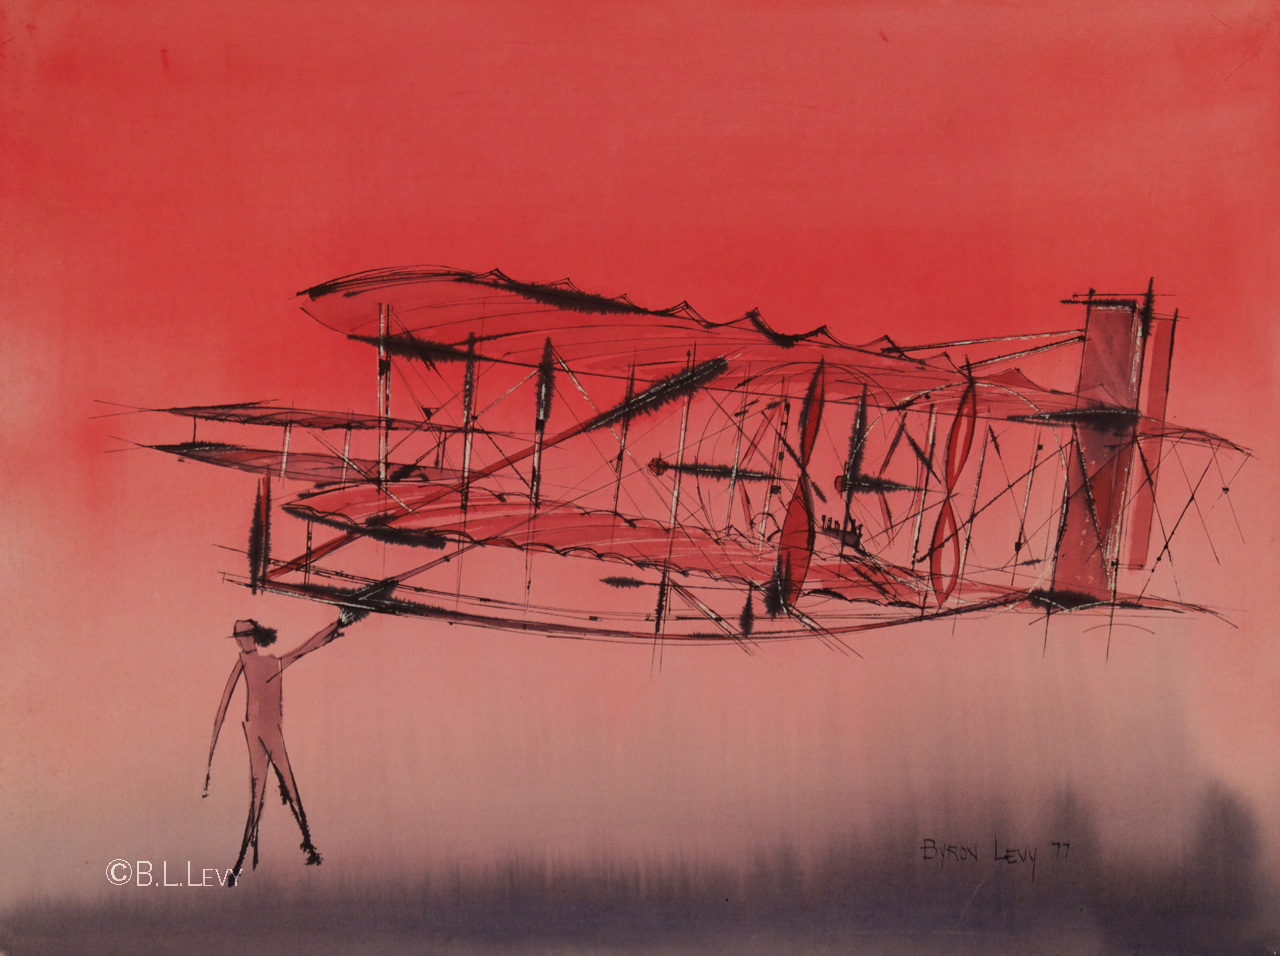 Gramp was fascinated with flight, and loved thinking of the Wright brothers, who no doubt inspired this painting.